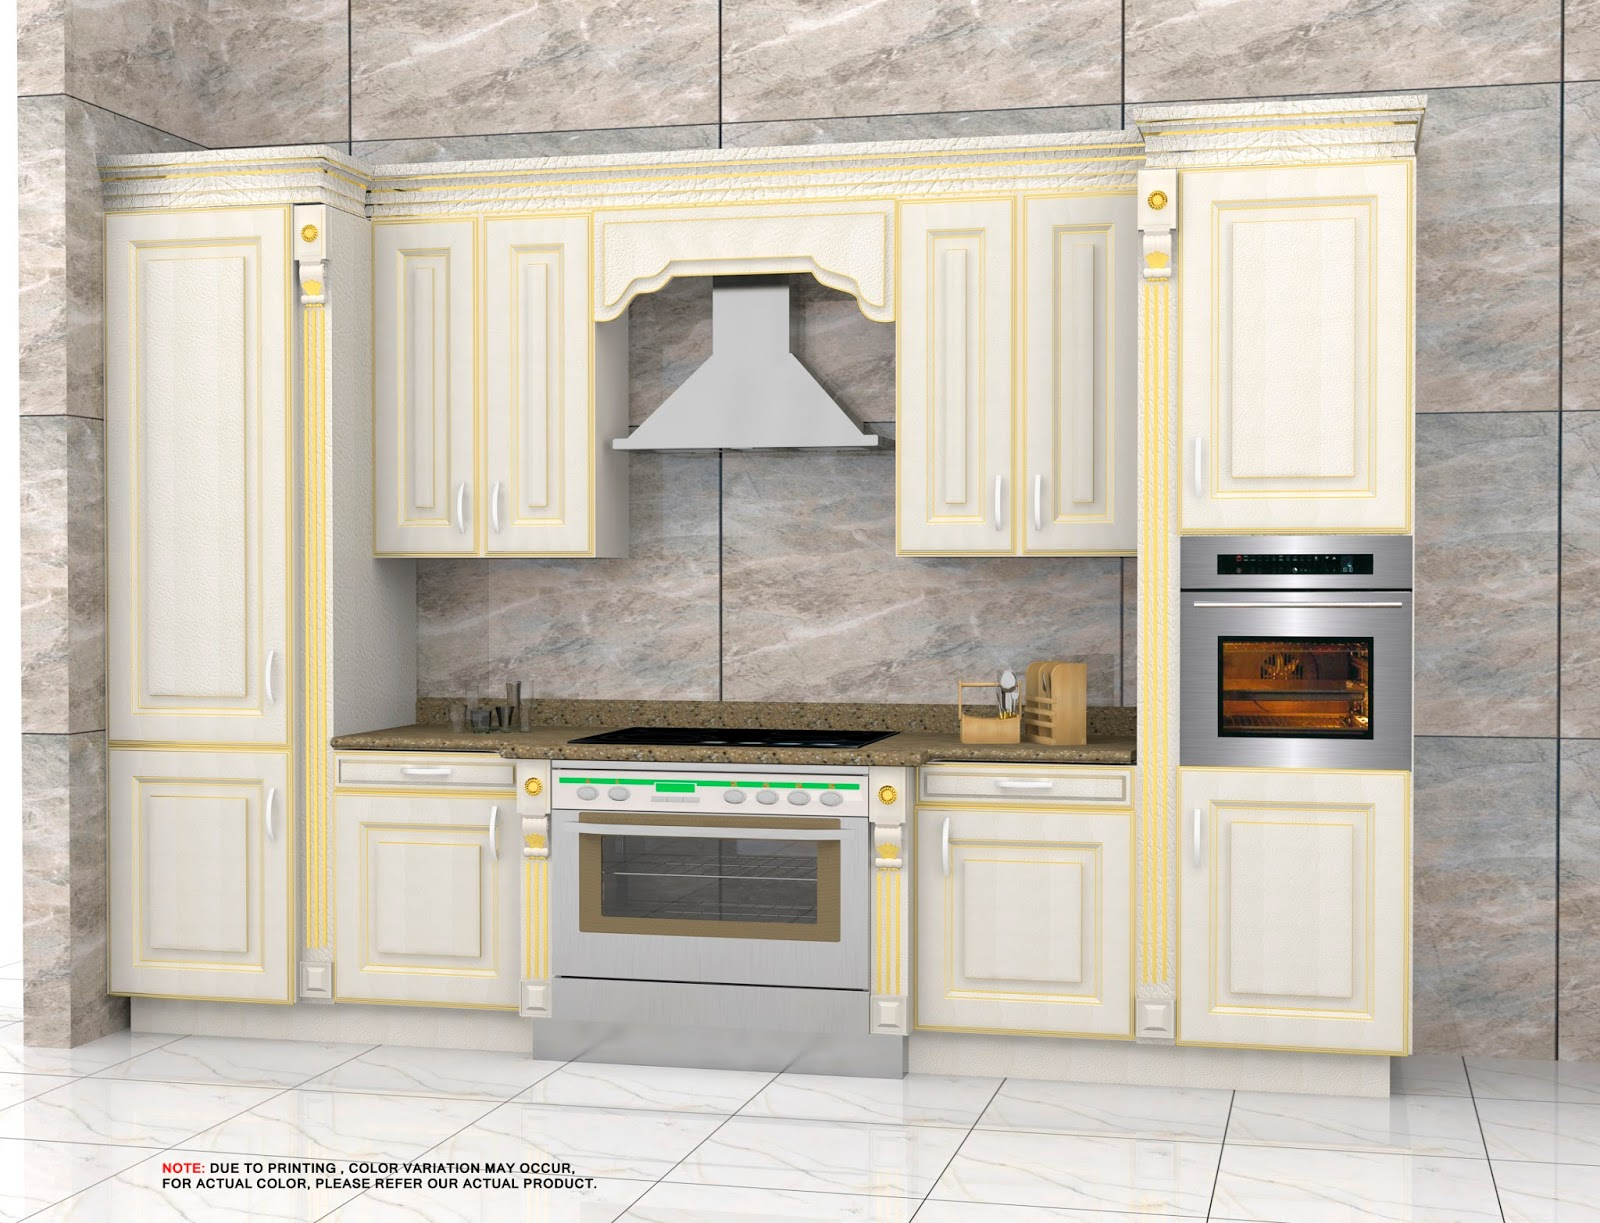 Amazing Qdesignfactory Classic Golden And Crack Kitchen Design Interior Design Ideas Tzicisoteloinfo